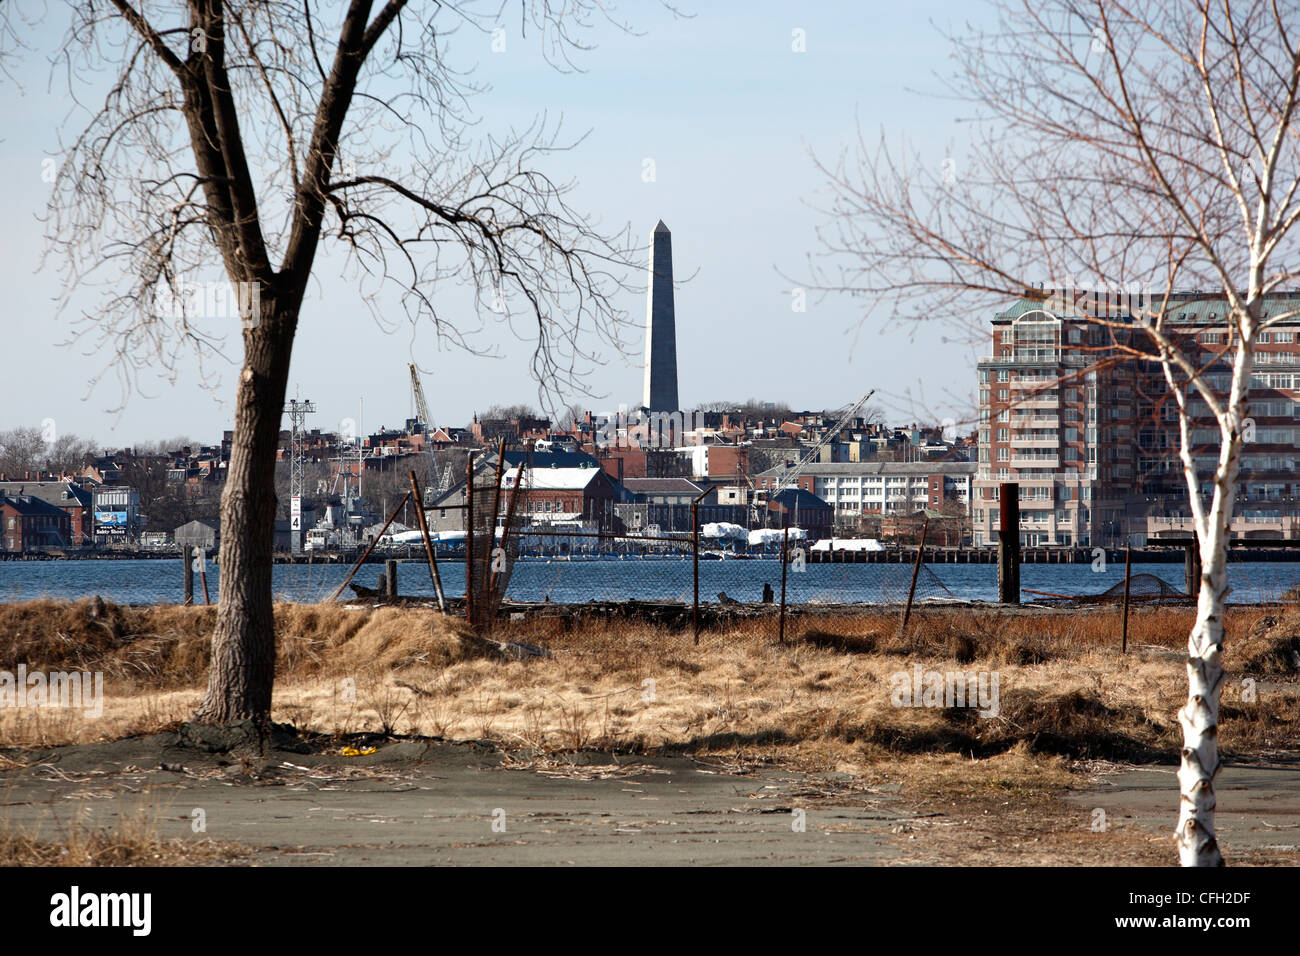 The Bunker Hill Monument is seen behind a vacant lot on the East Boston water, Boston, Massachusetts - Stock Image